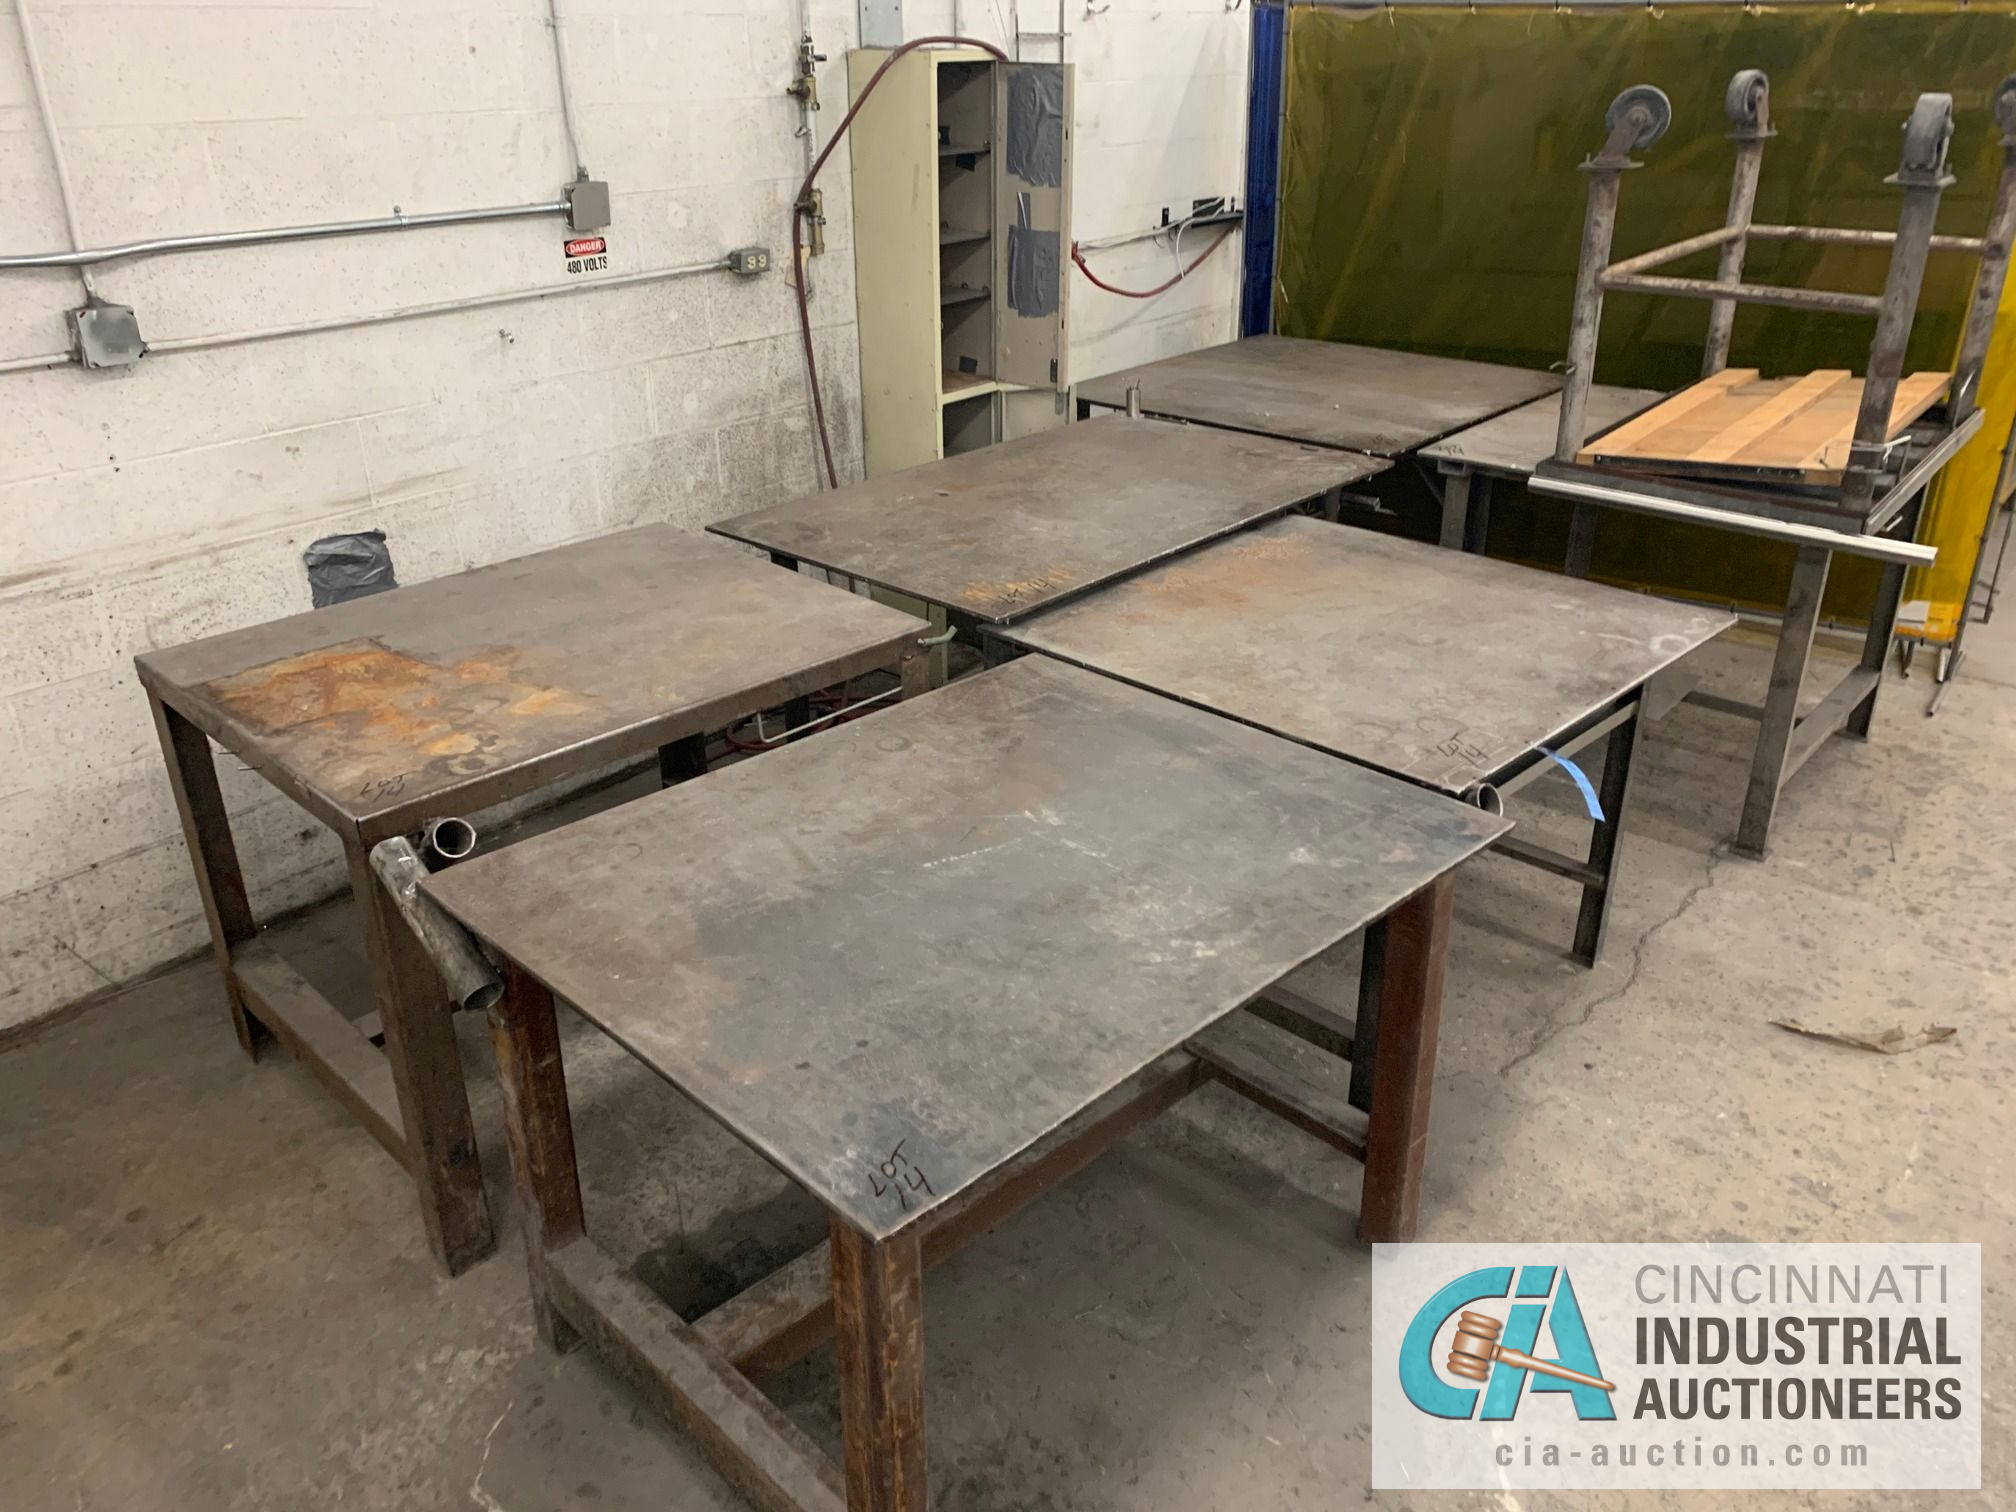 VARIOUS HEAVY WELD TABLES - Image 2 of 3